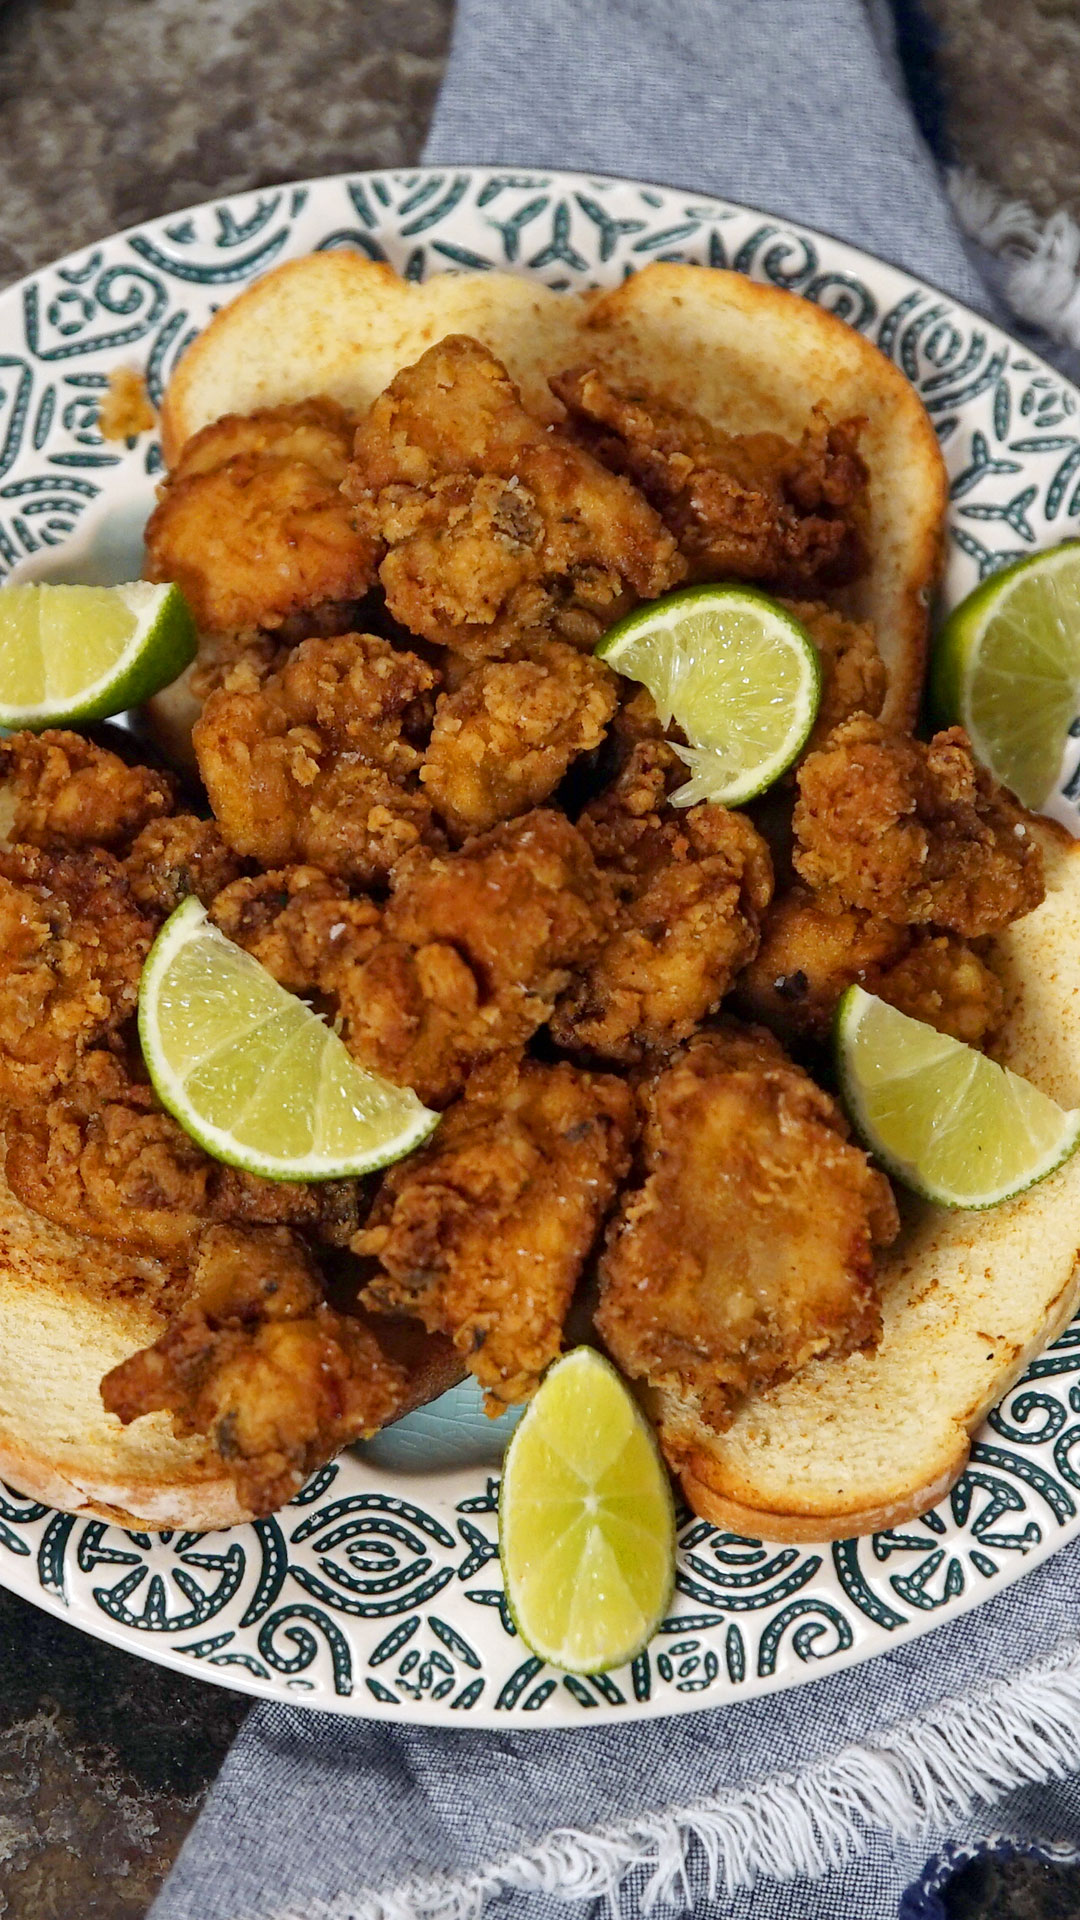 Dominican fried chicken recipe tastemade forumfinder Image collections